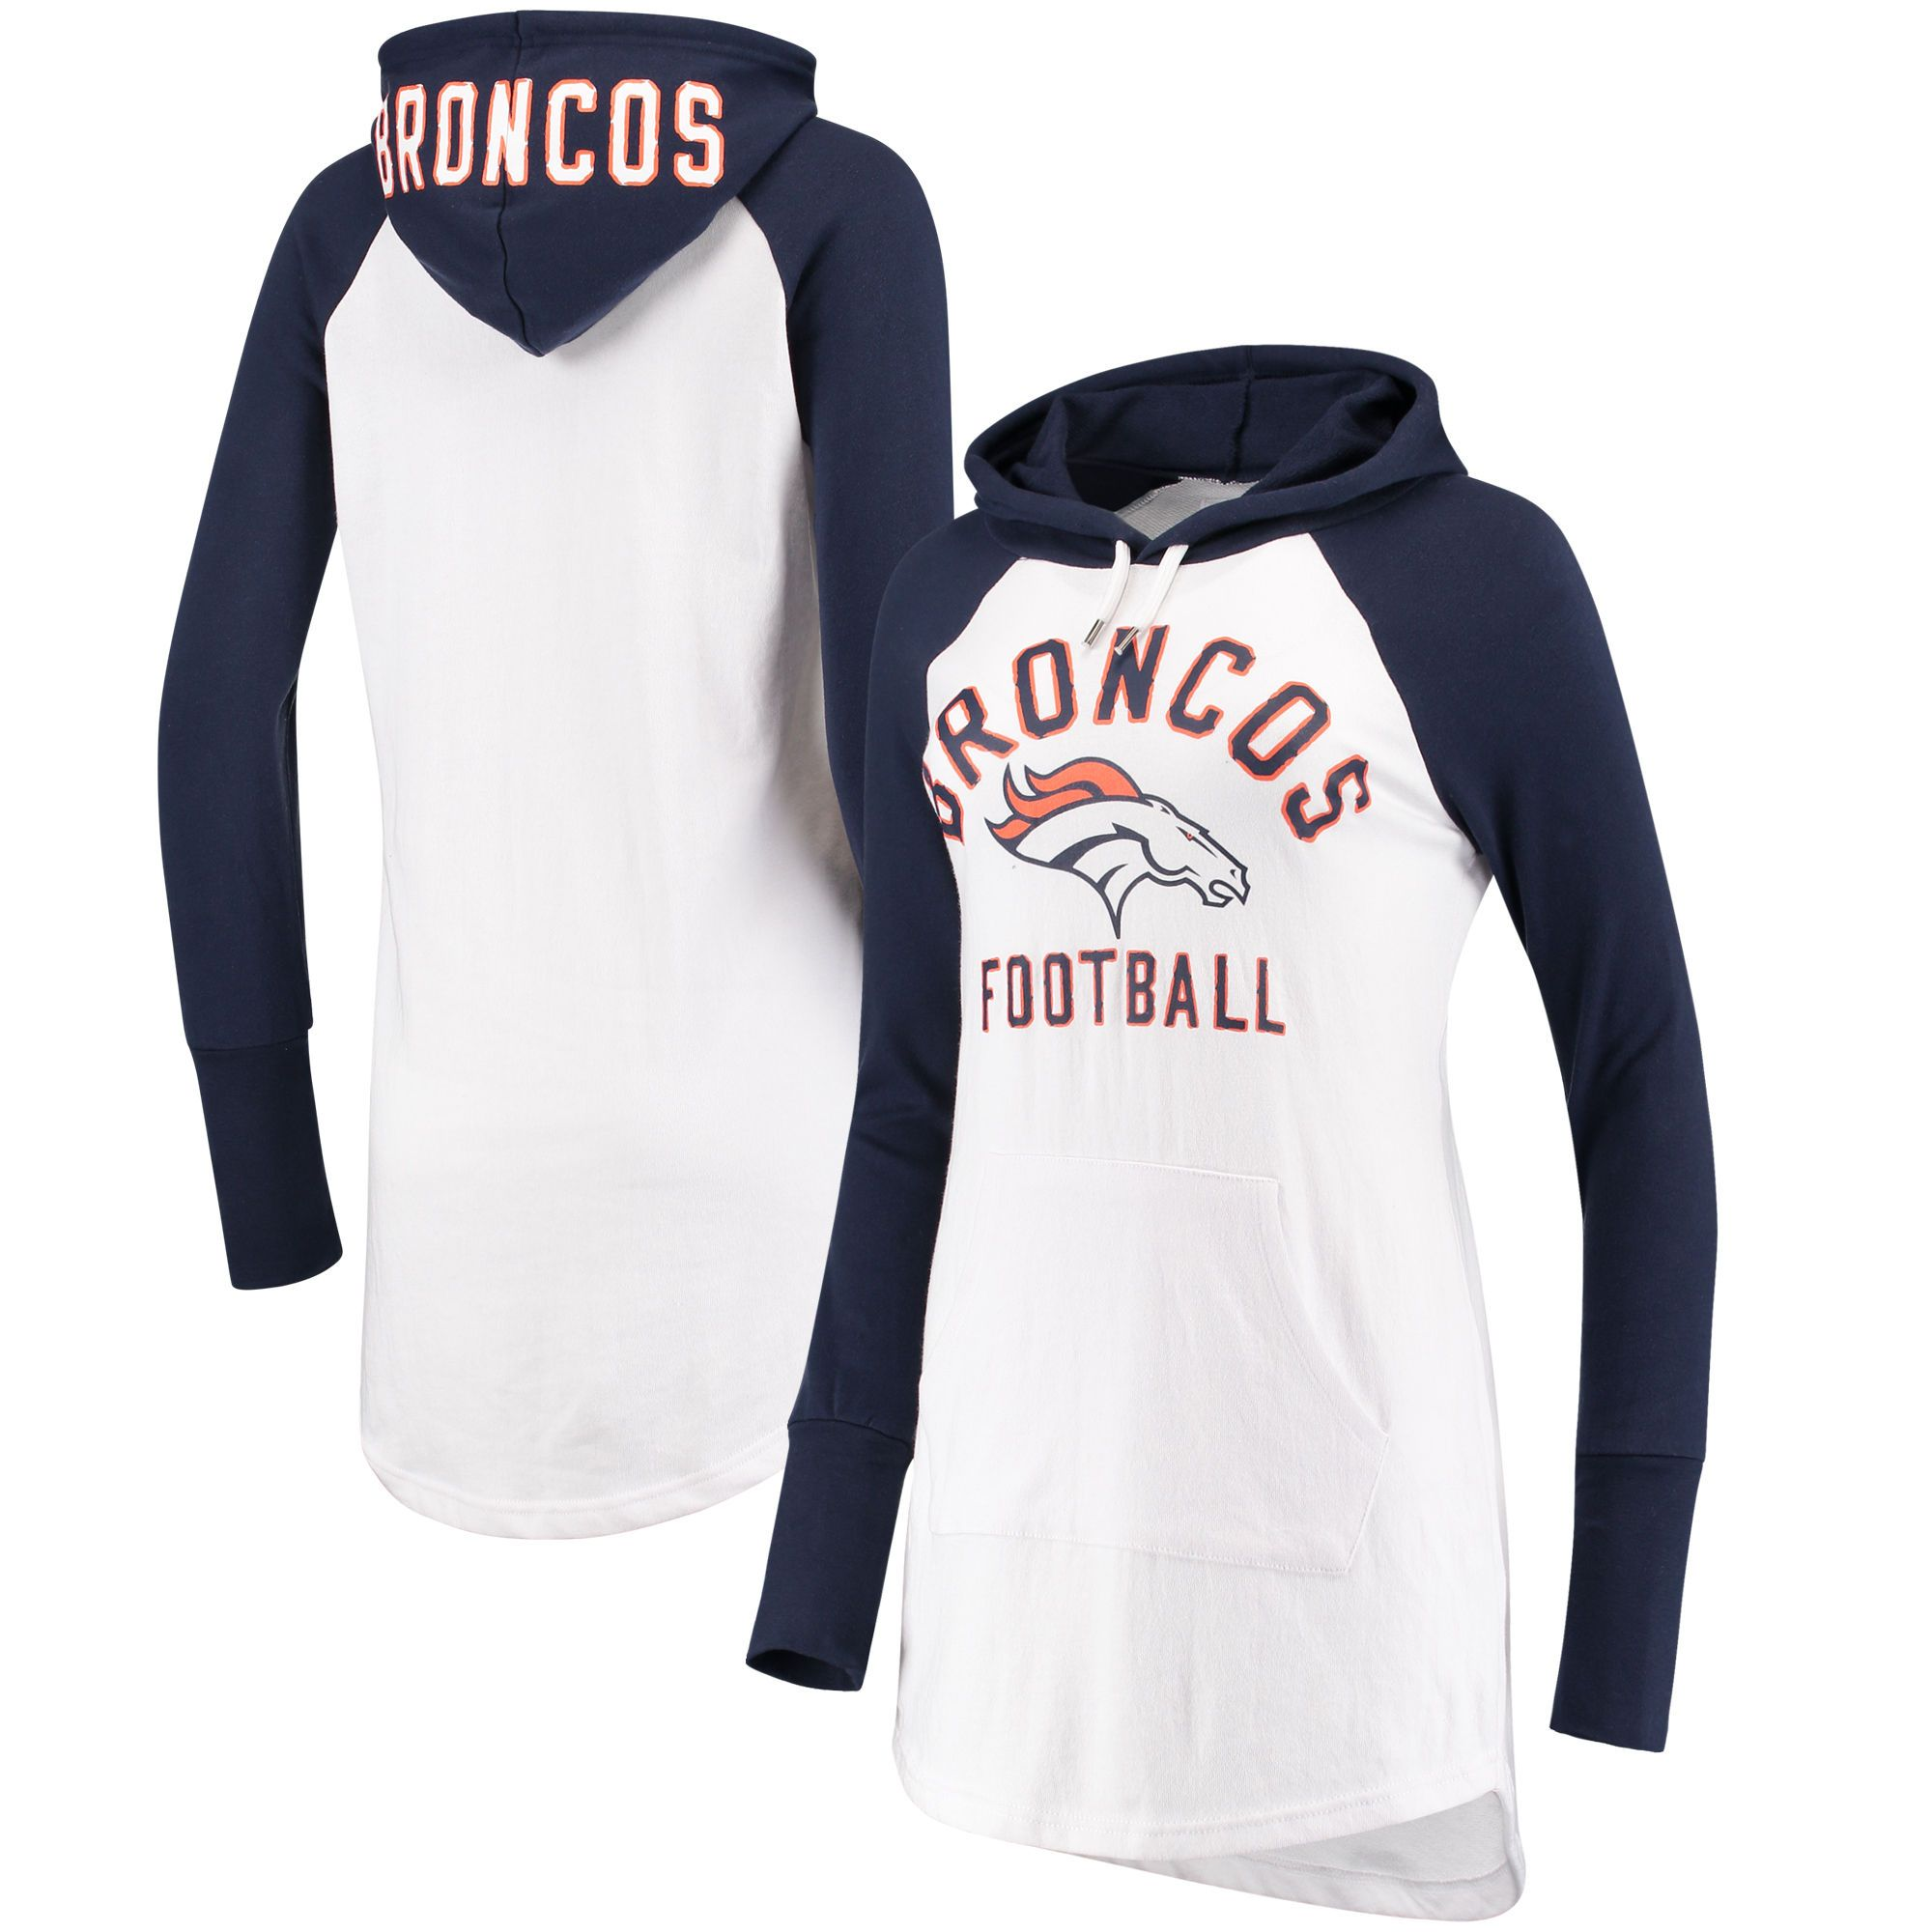 8210998e194c Women's G-III 4Her by Carl Banks White/Navy Denver Broncos All Division  Raglan Sleeve Pullover Hoodie